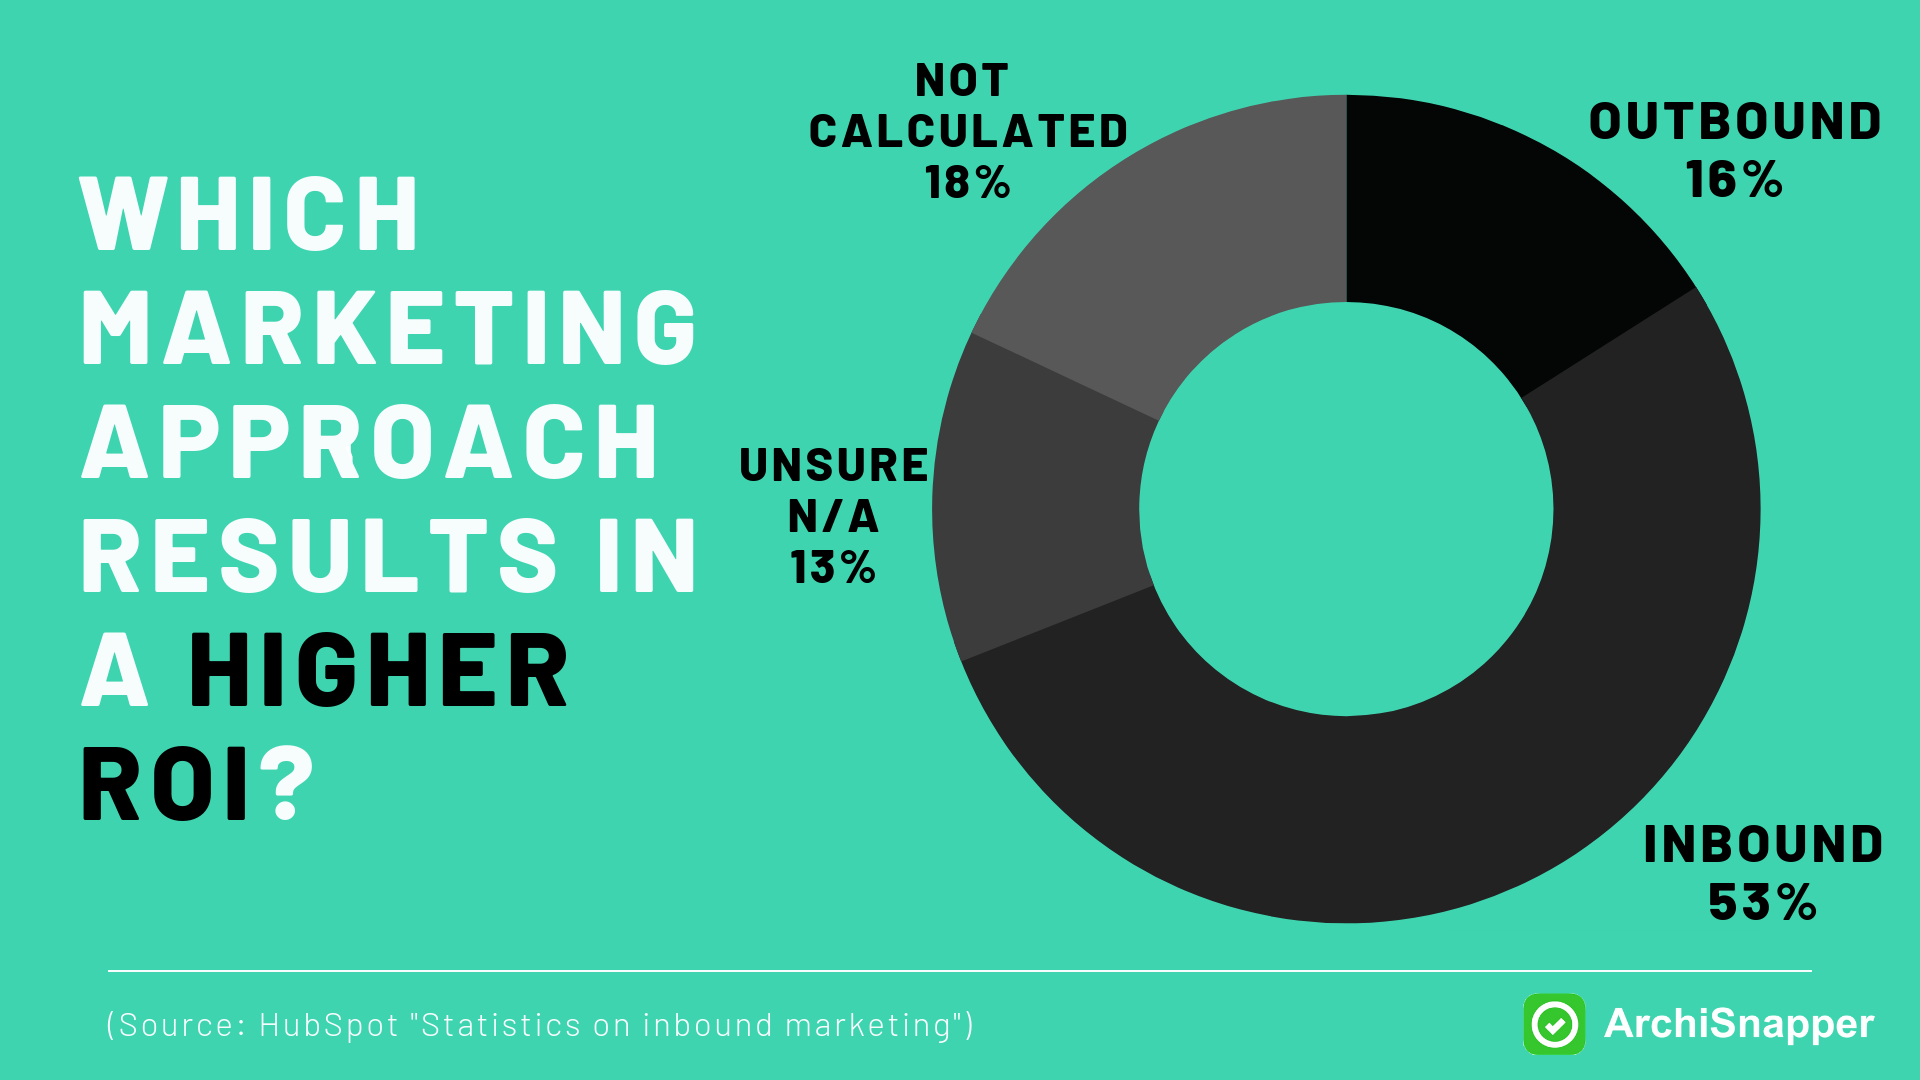 Inbound Marketing Provides a Higher ROI | ArchiSnapper